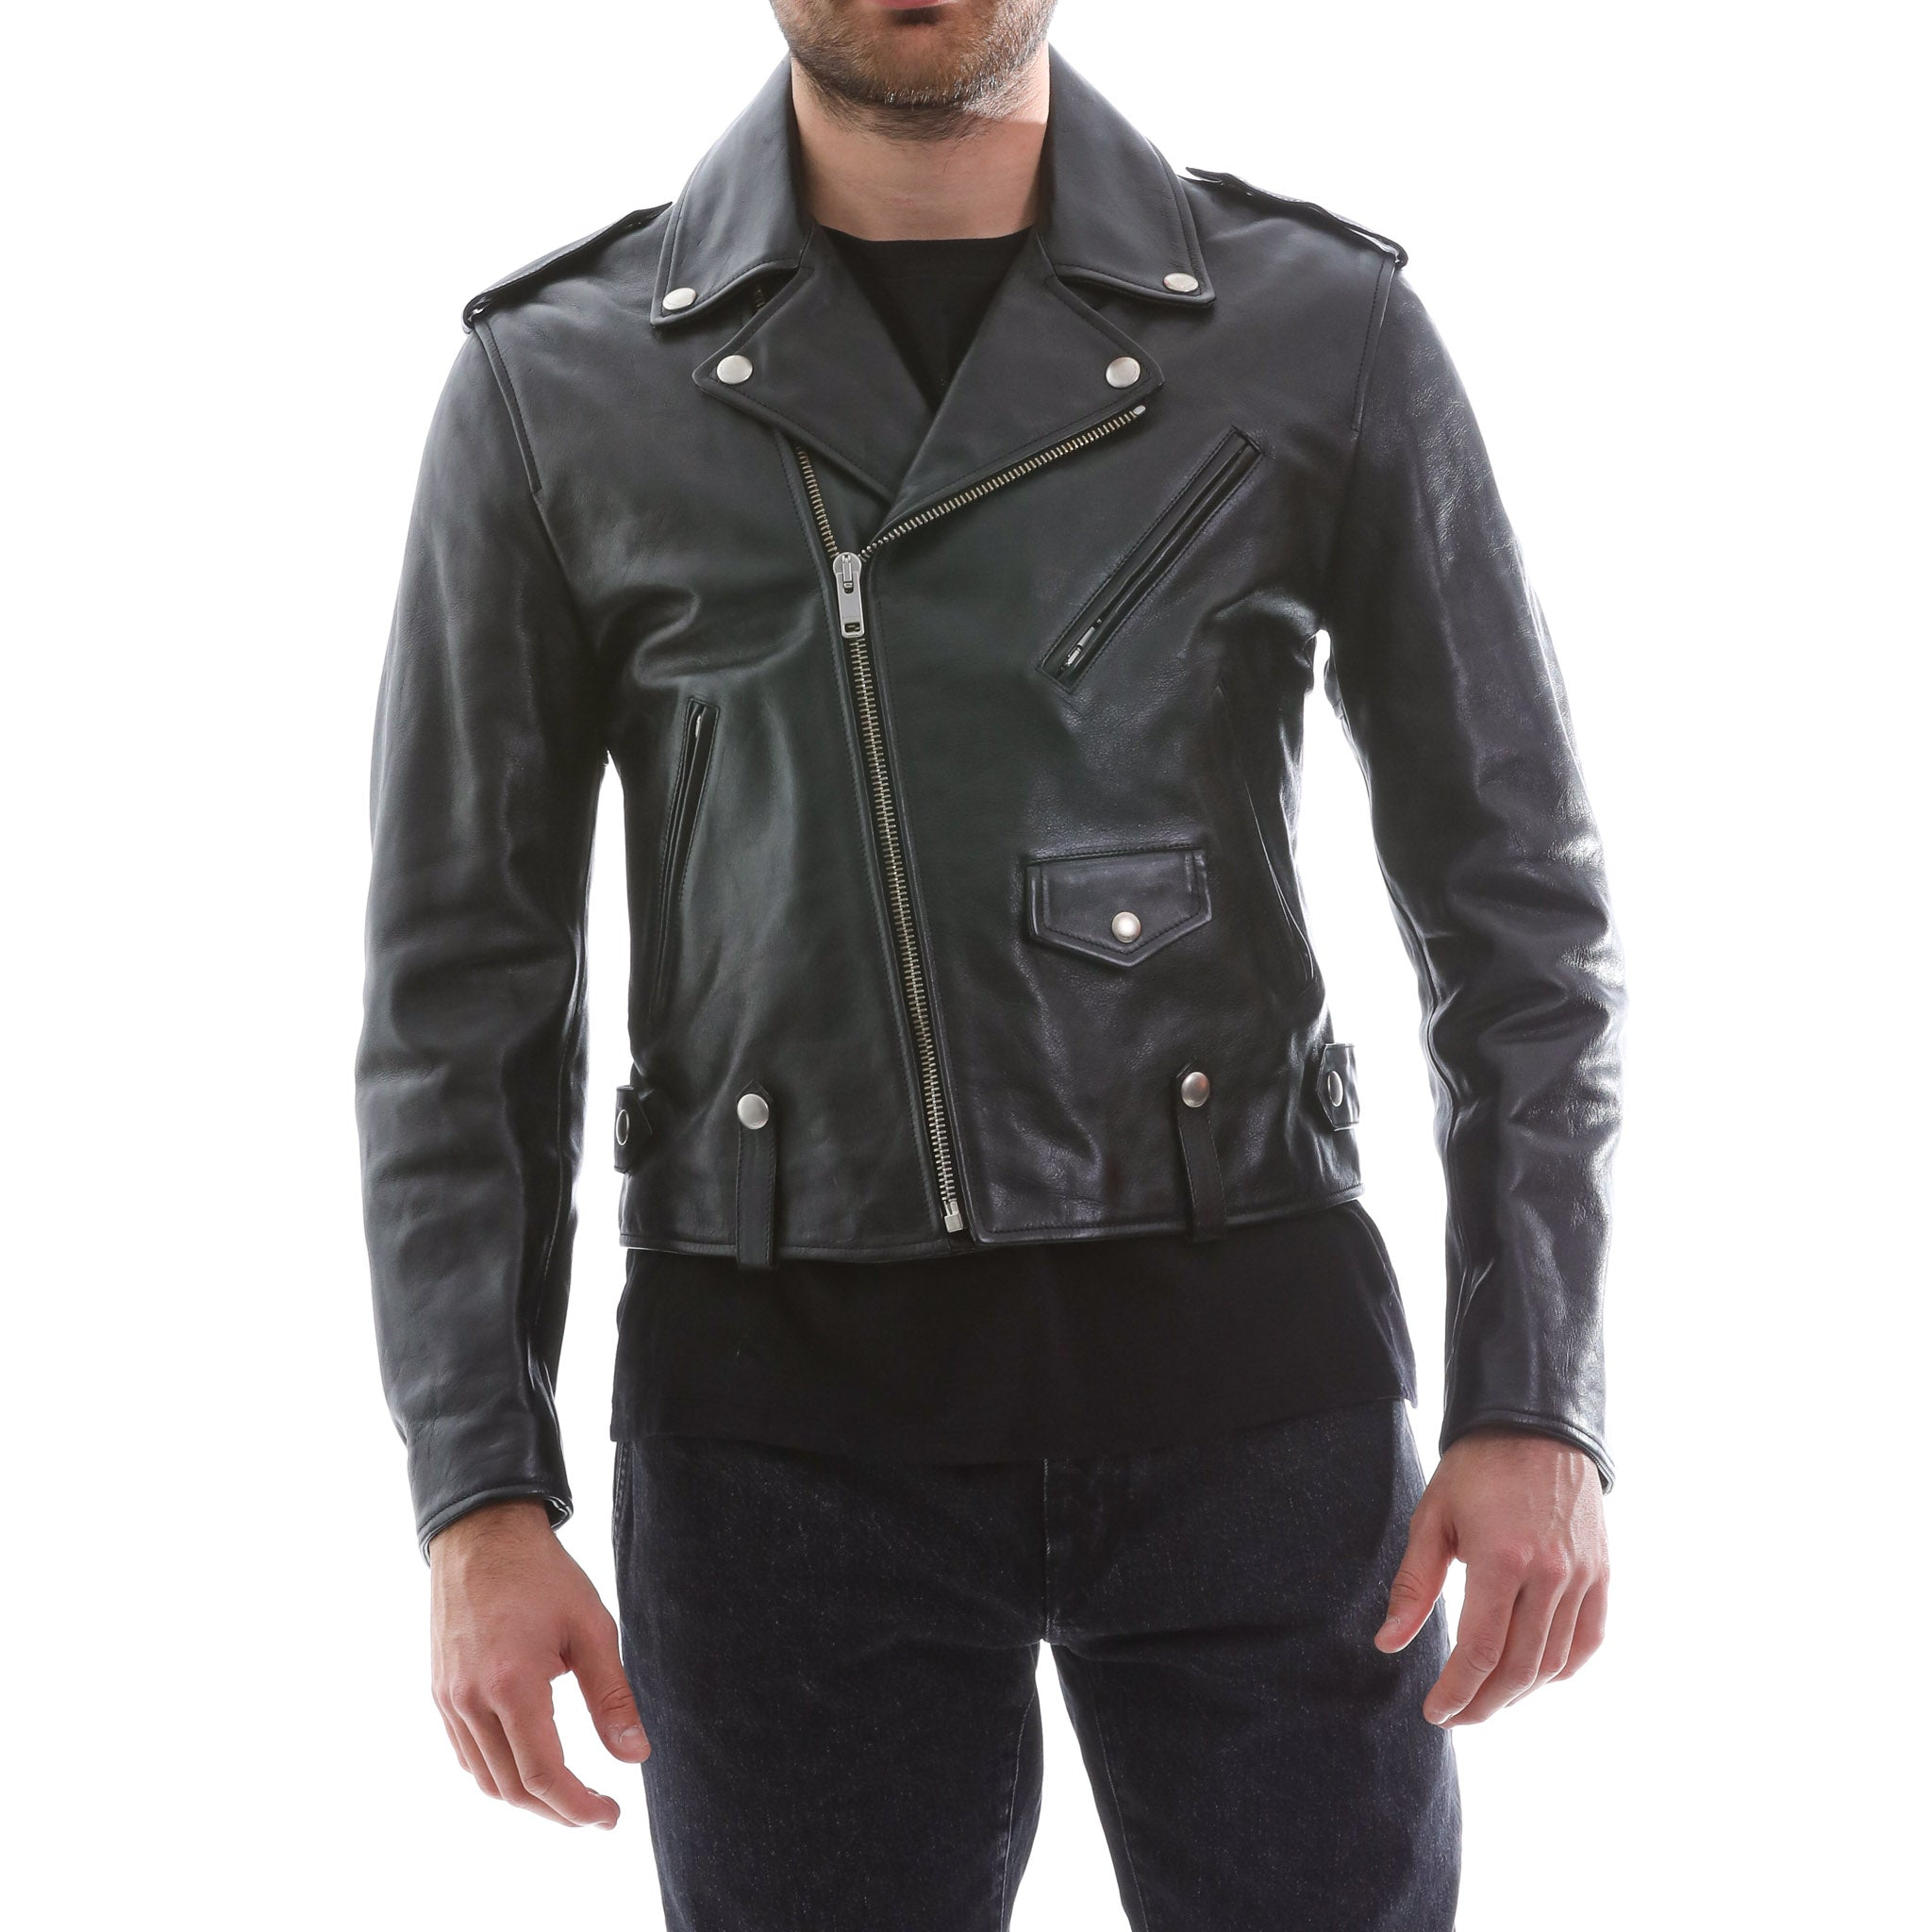 Givenchy Boxy Biker Leather Jacket